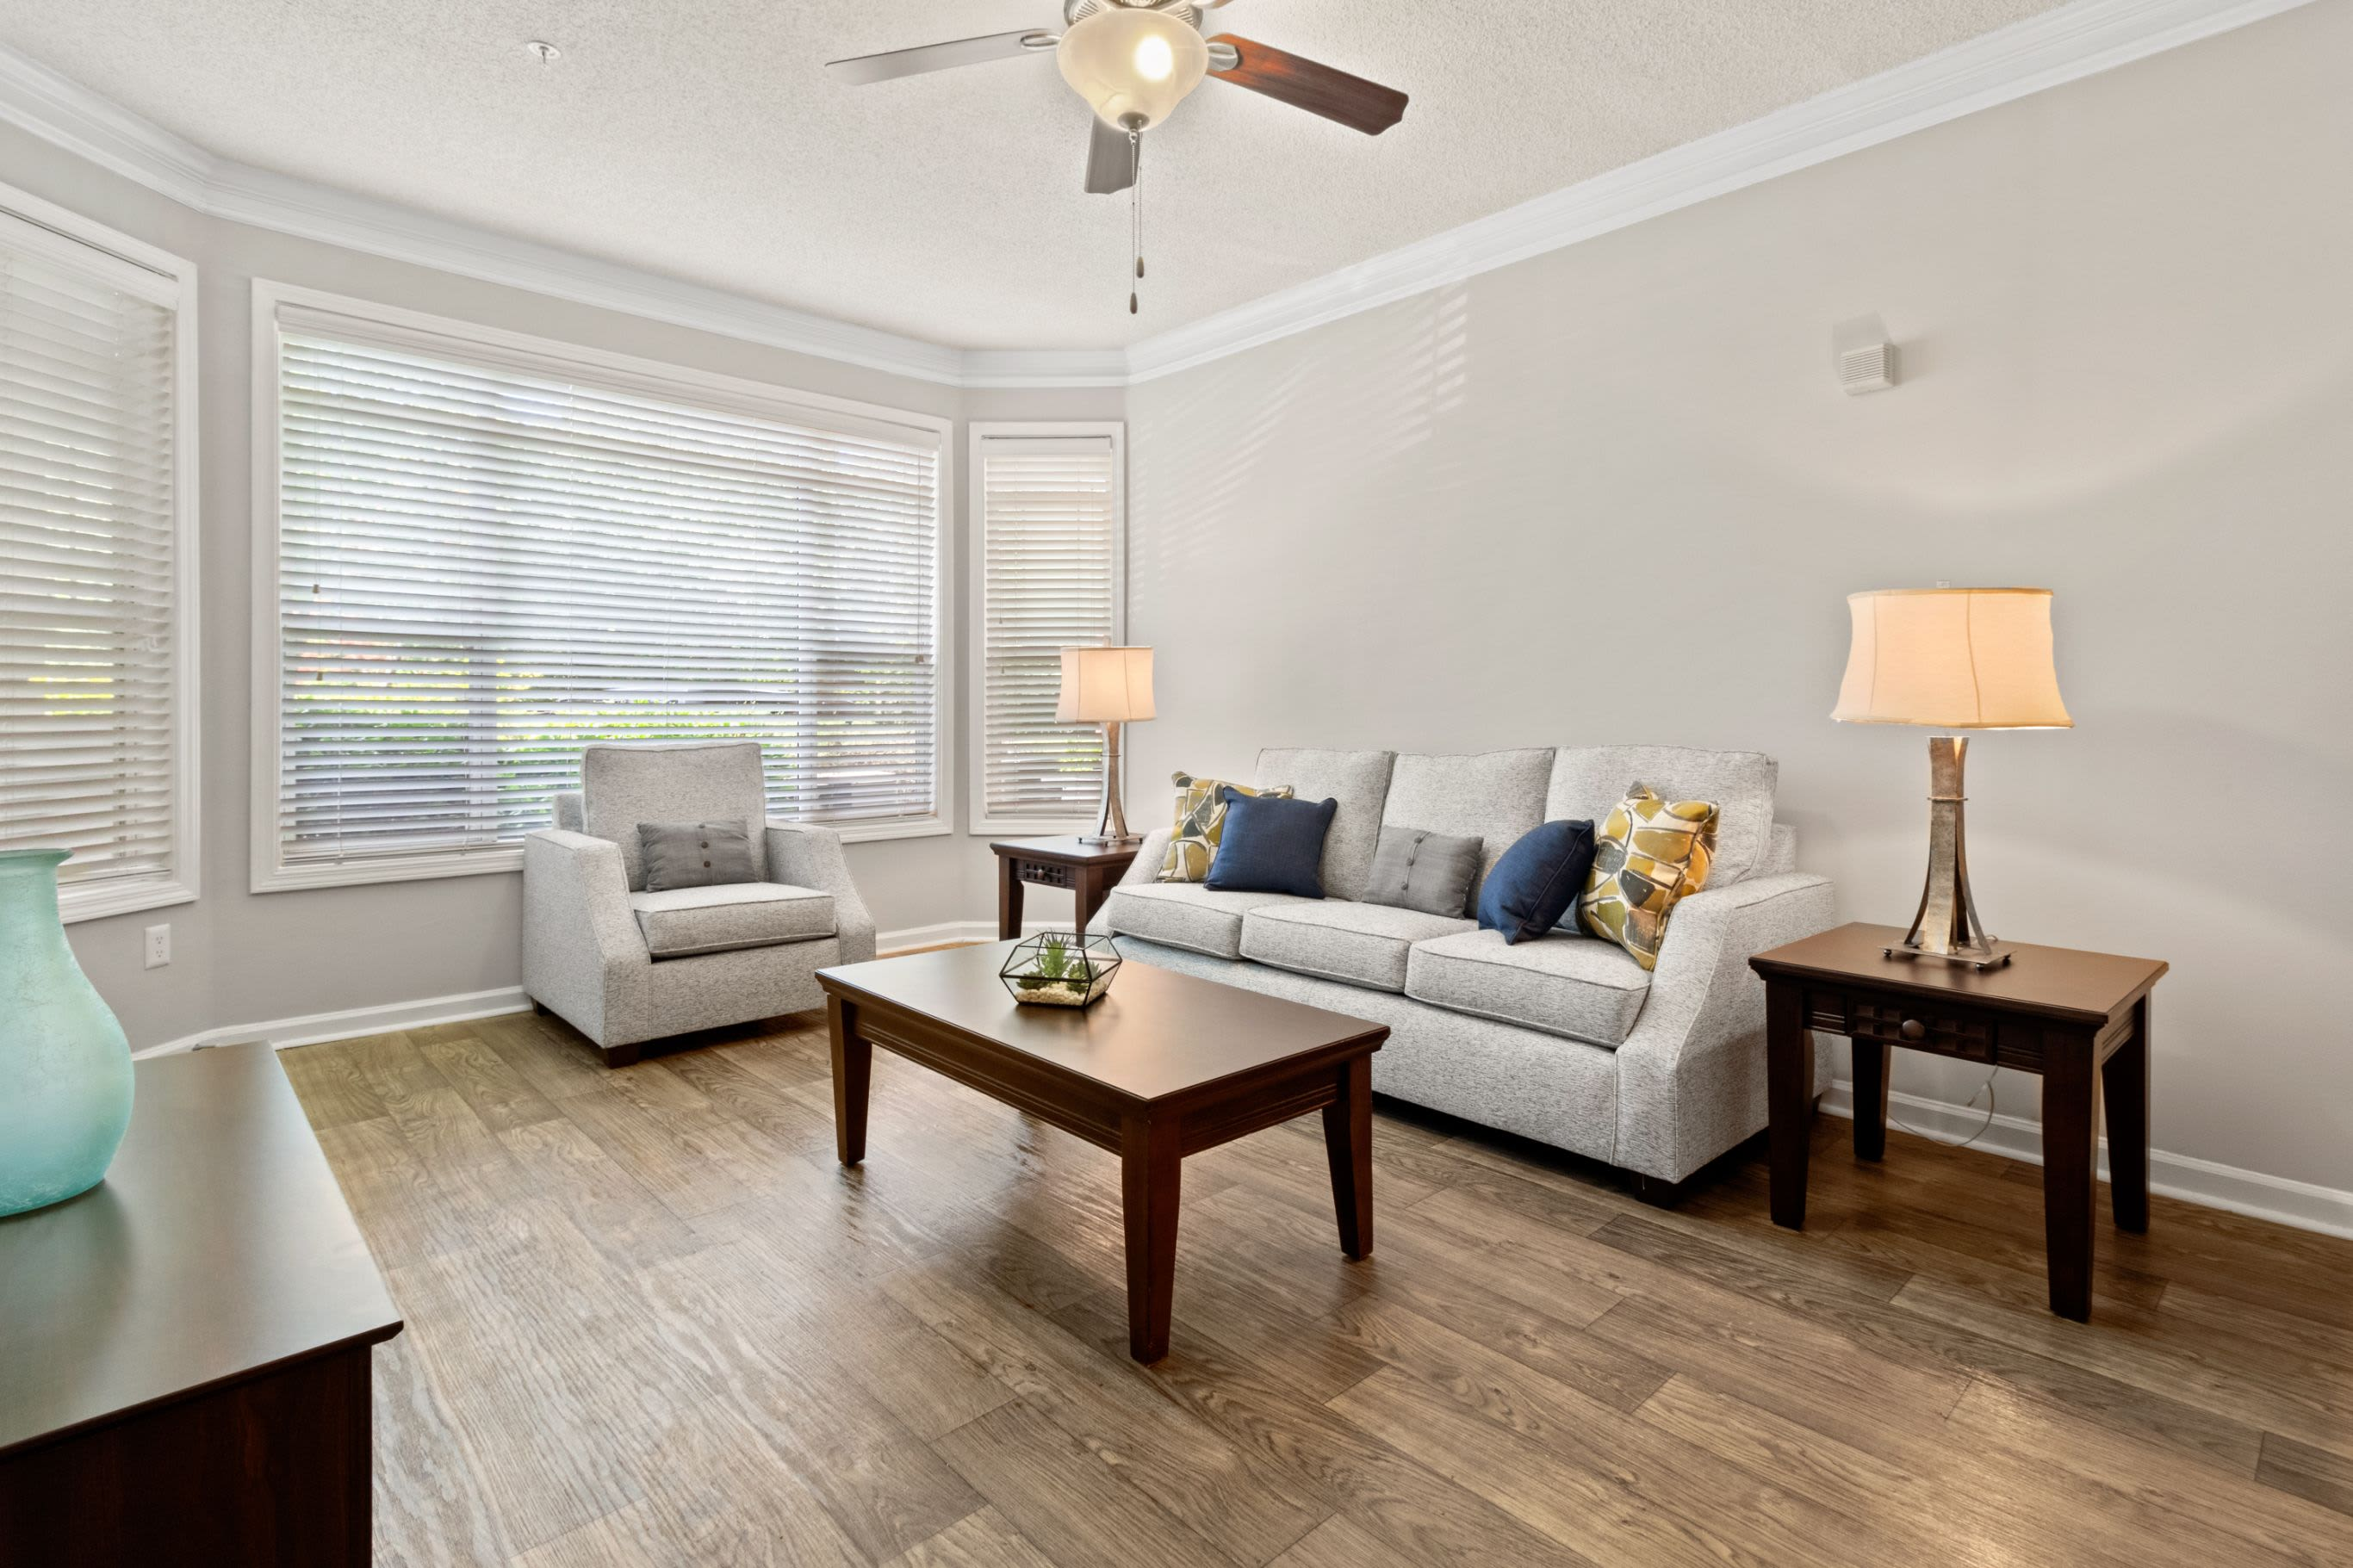 Living room with a white couch at Marquis Midtown West in Atlanta, Georgia